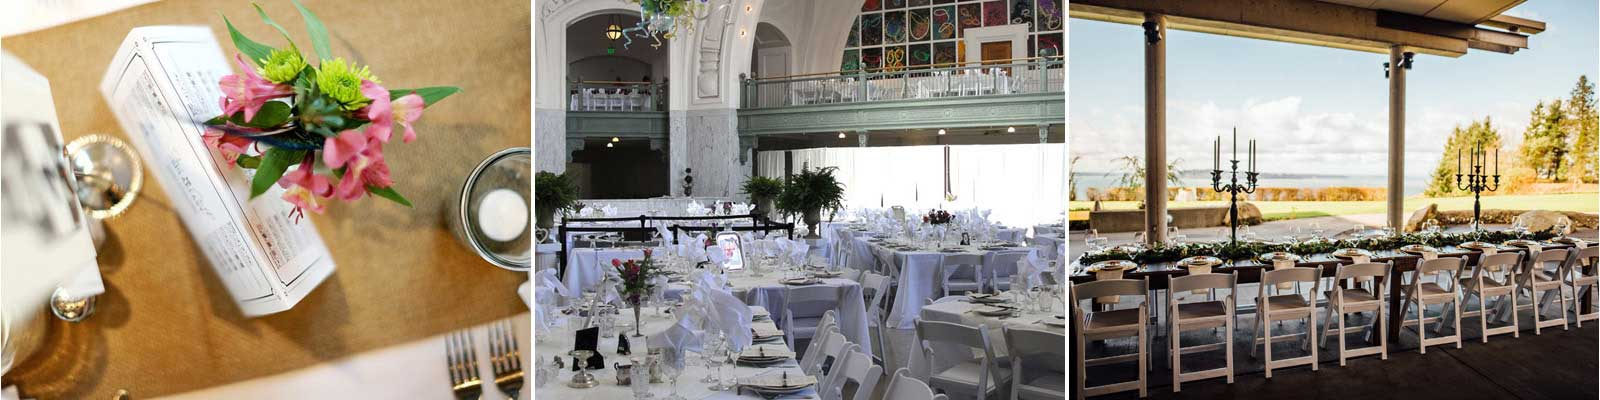 wedding chair covers rentals seattle king outdoor furniture american party place and event in tacoma china the greater south sound region